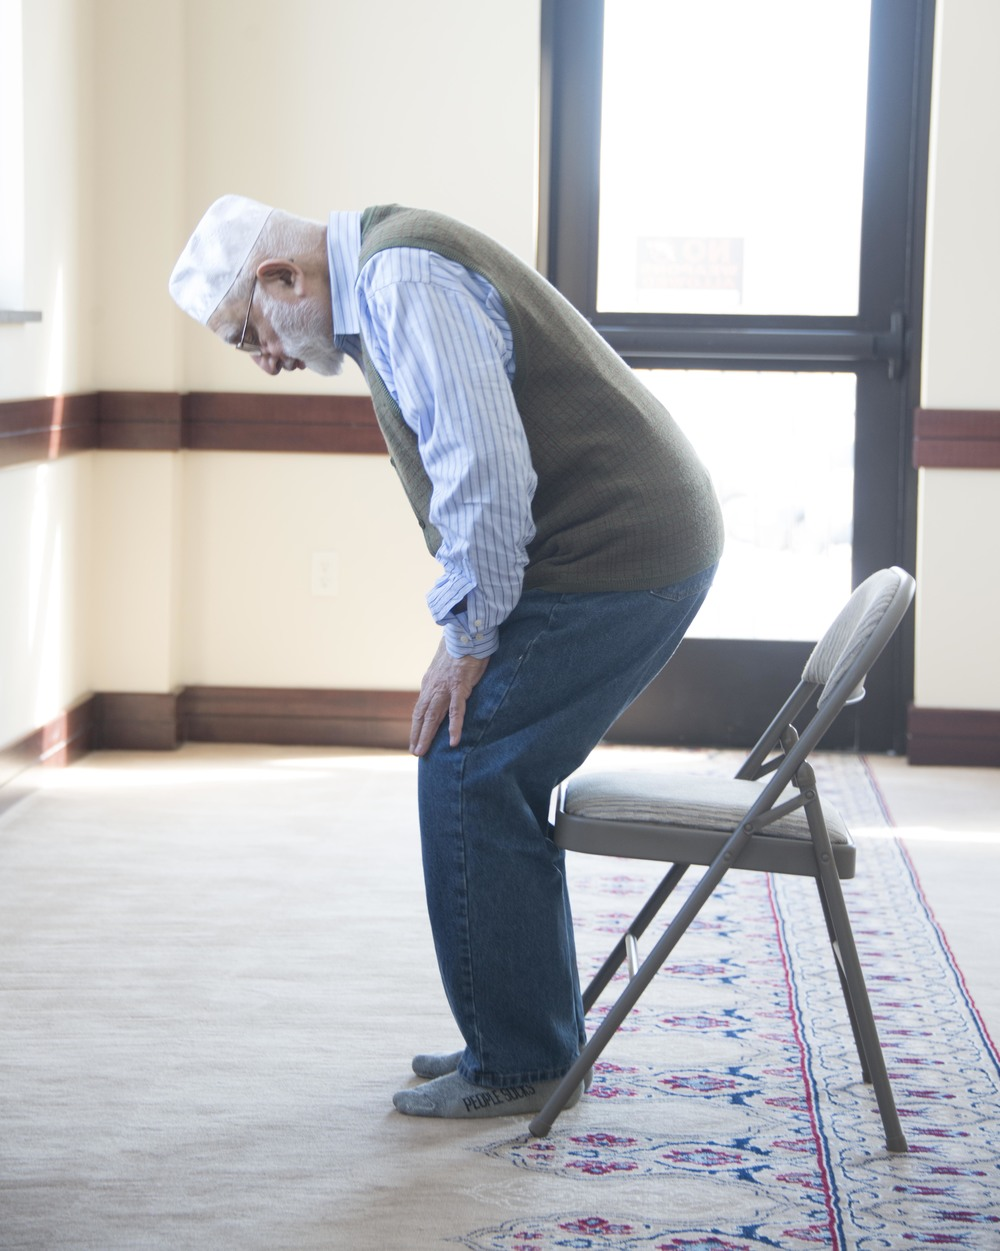 An elderly gentleman offers Namaz